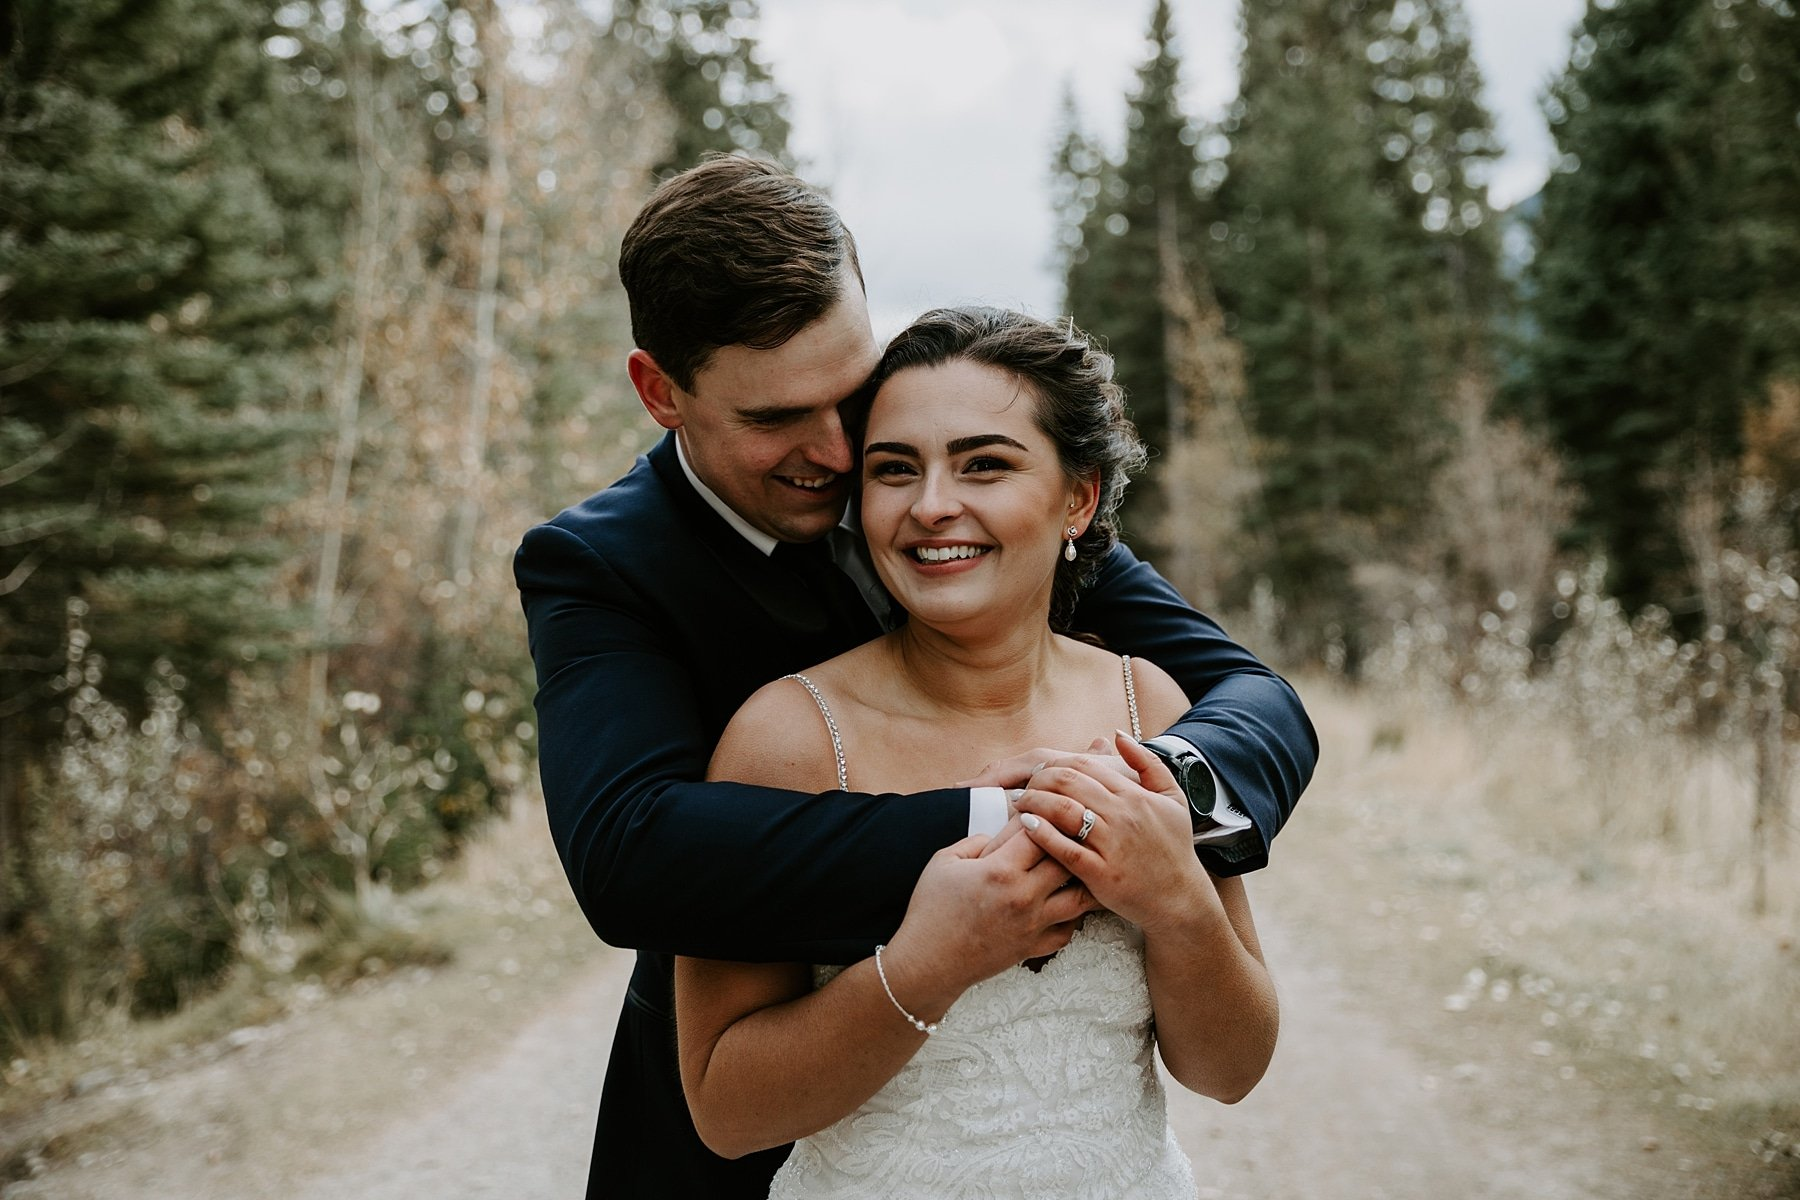 Canmore wedding photos